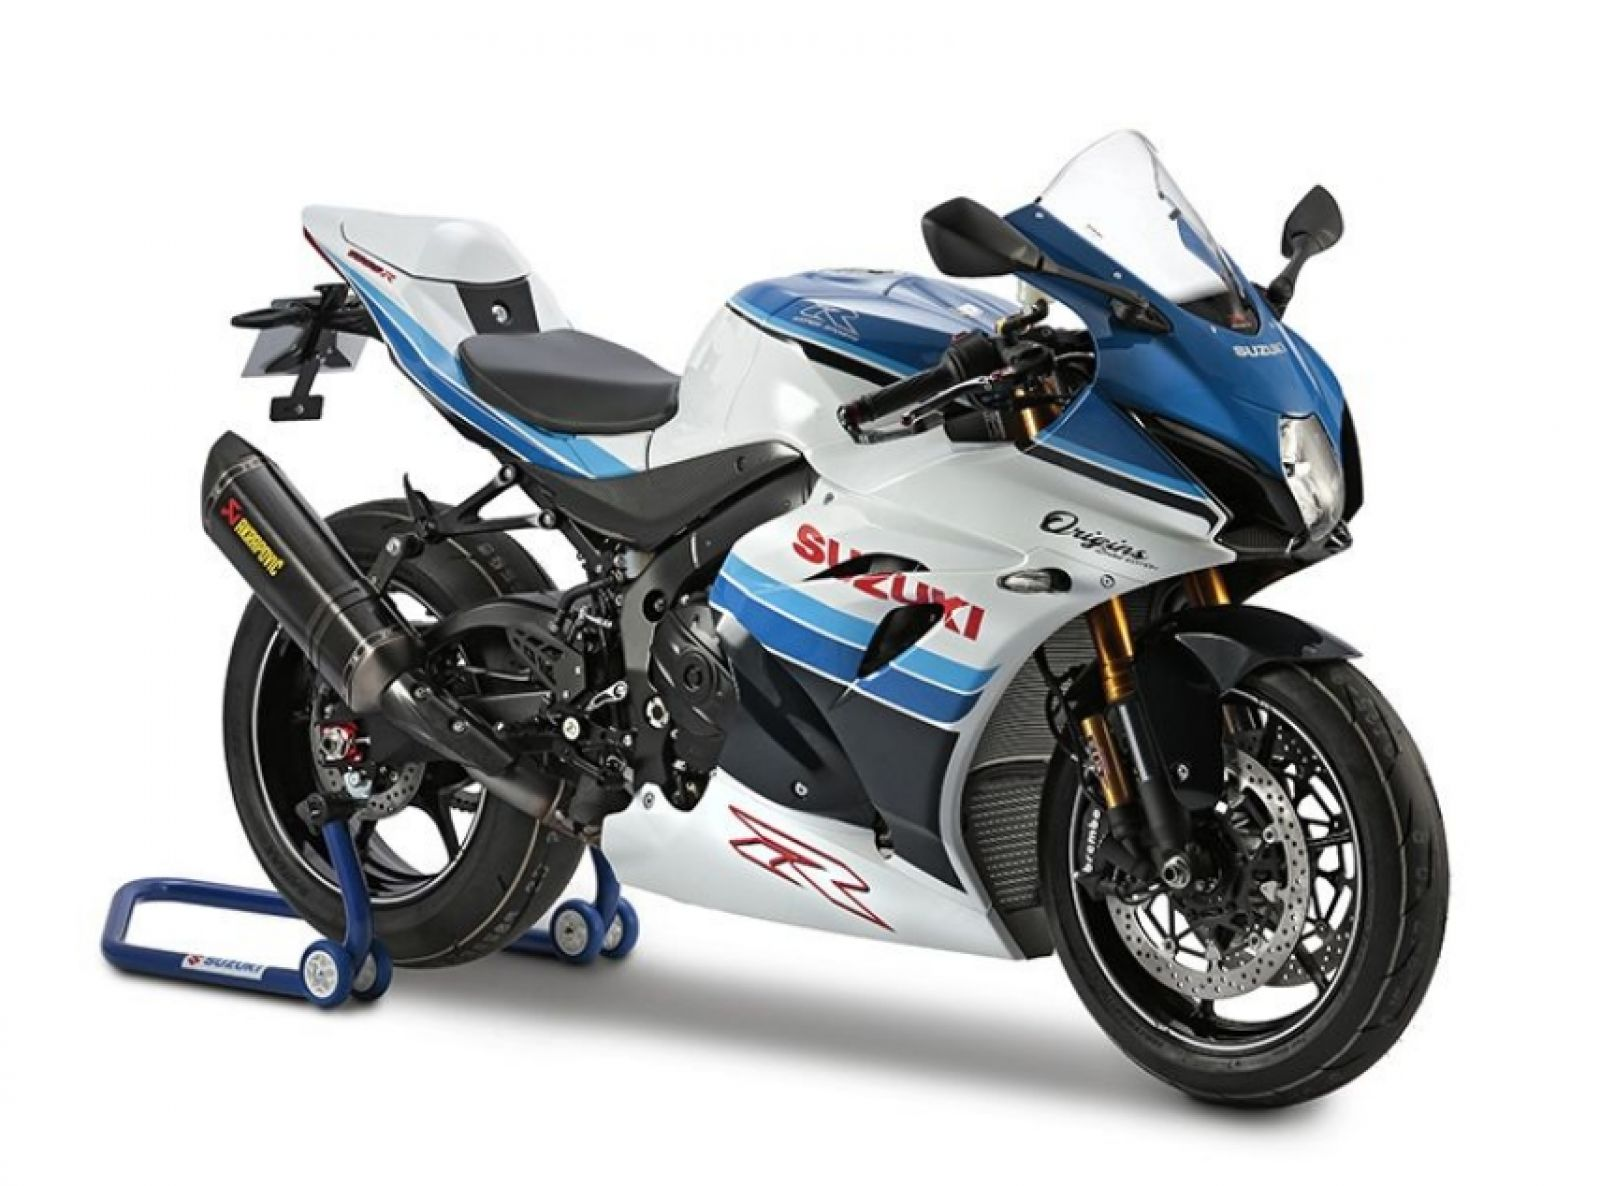 actualité - GSX-R1000R Origins - image d'illustration 12